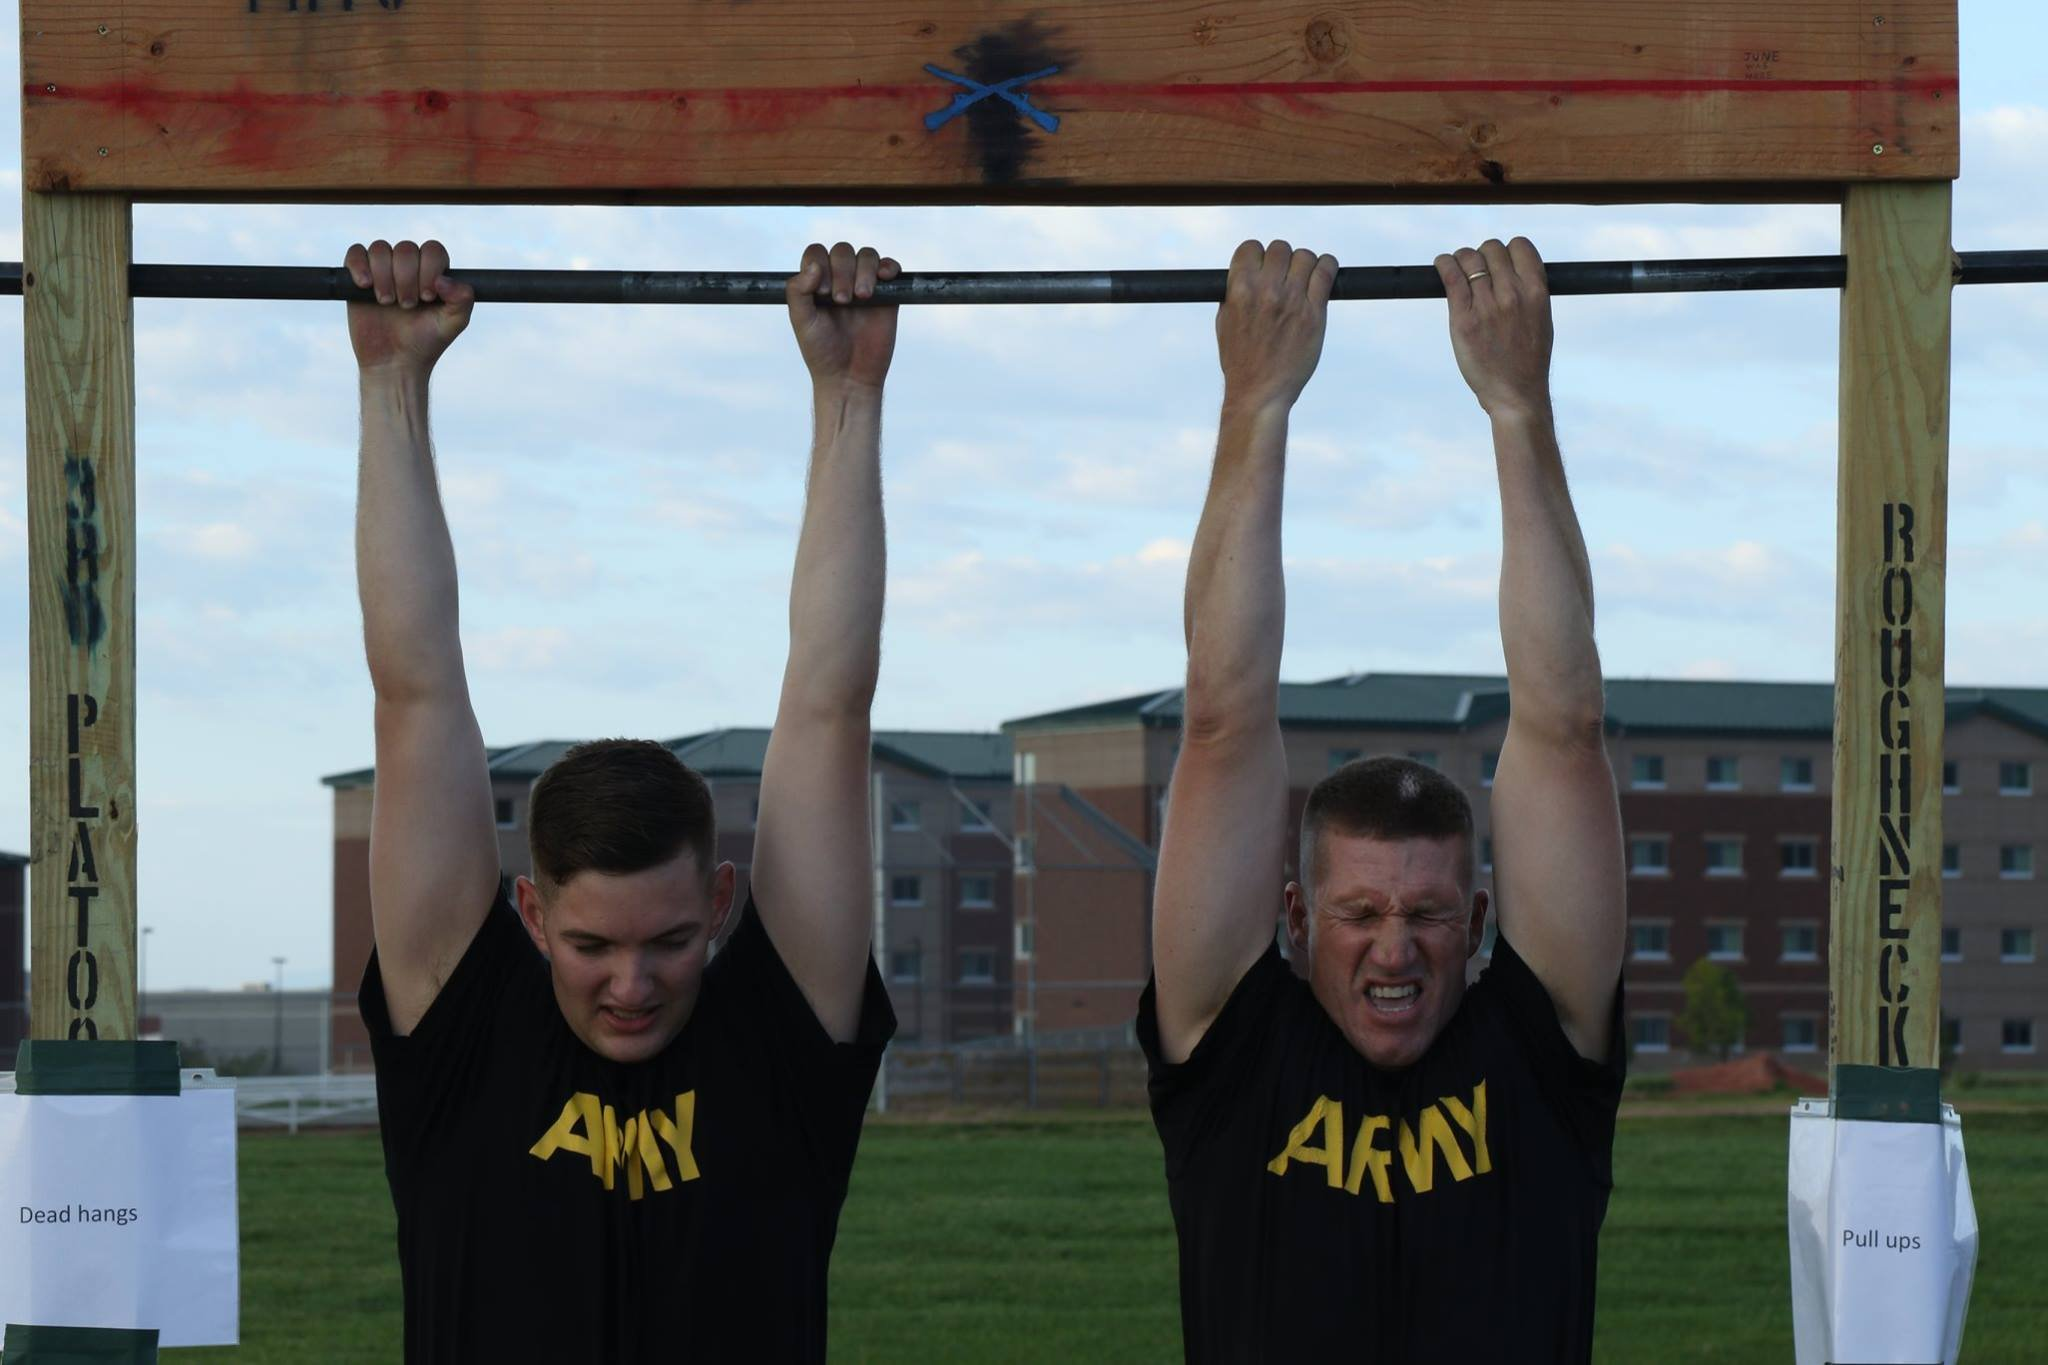 Sergeant Major of the Army Daniel A. Dailey (right) visits the #4ID and conducts Physical Readiness Training with Soldiers of the 2nd Infantry Brigade Combat Team, 4th Infantry Division as part of #IronHorse Week festivities.